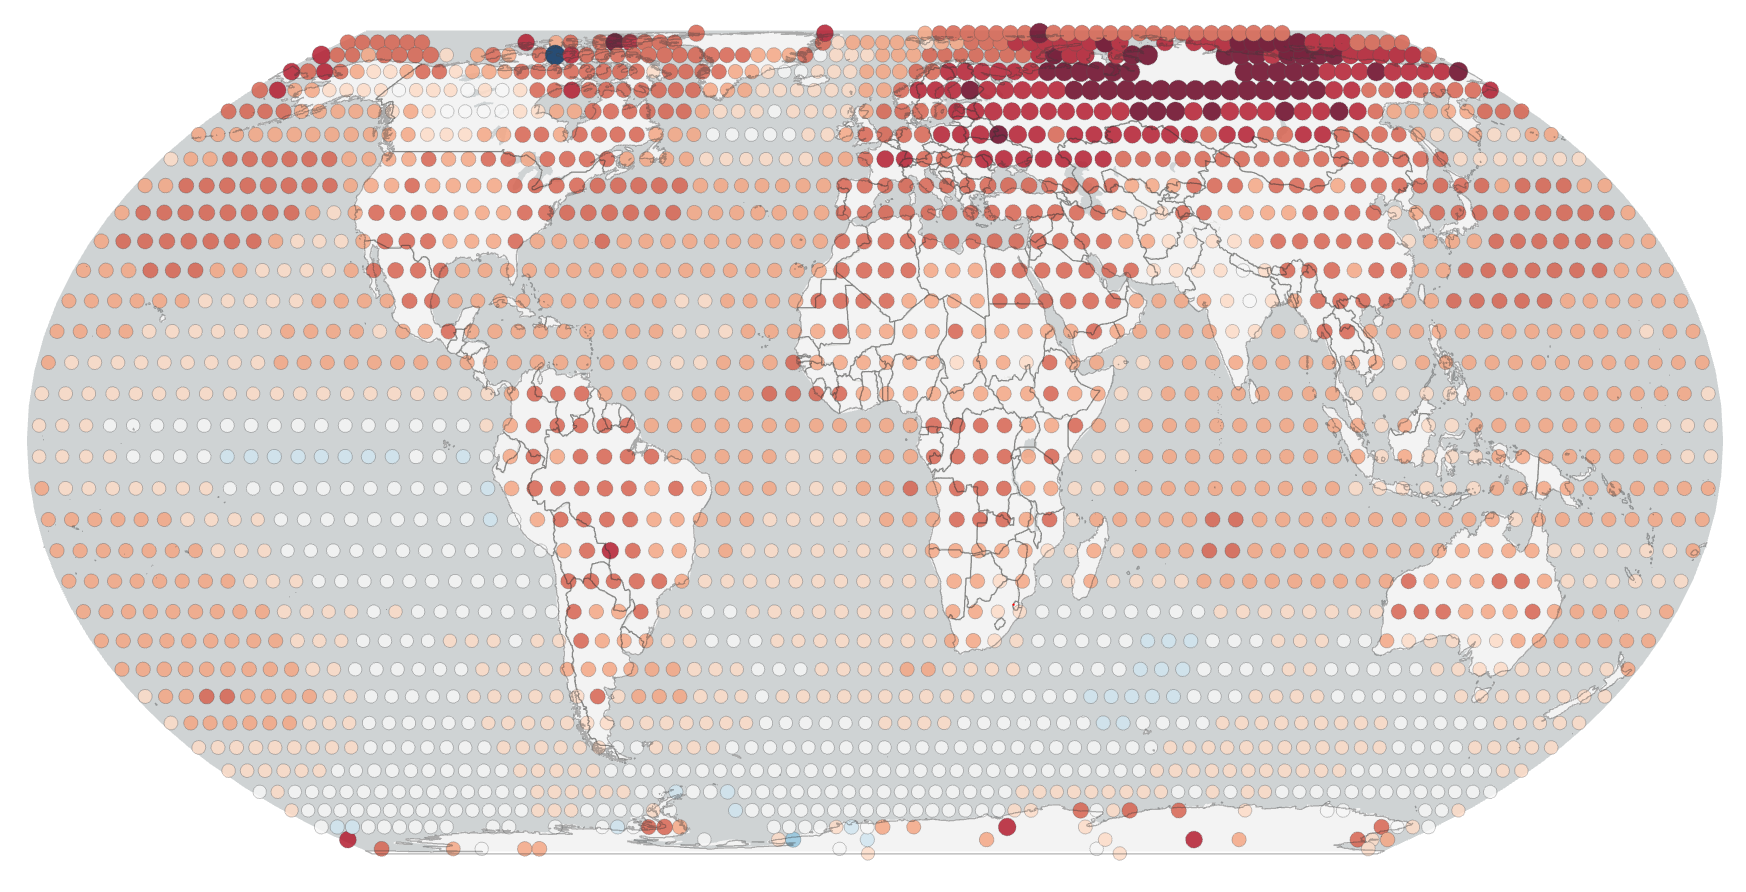 Map of lobal temperatures for 2020